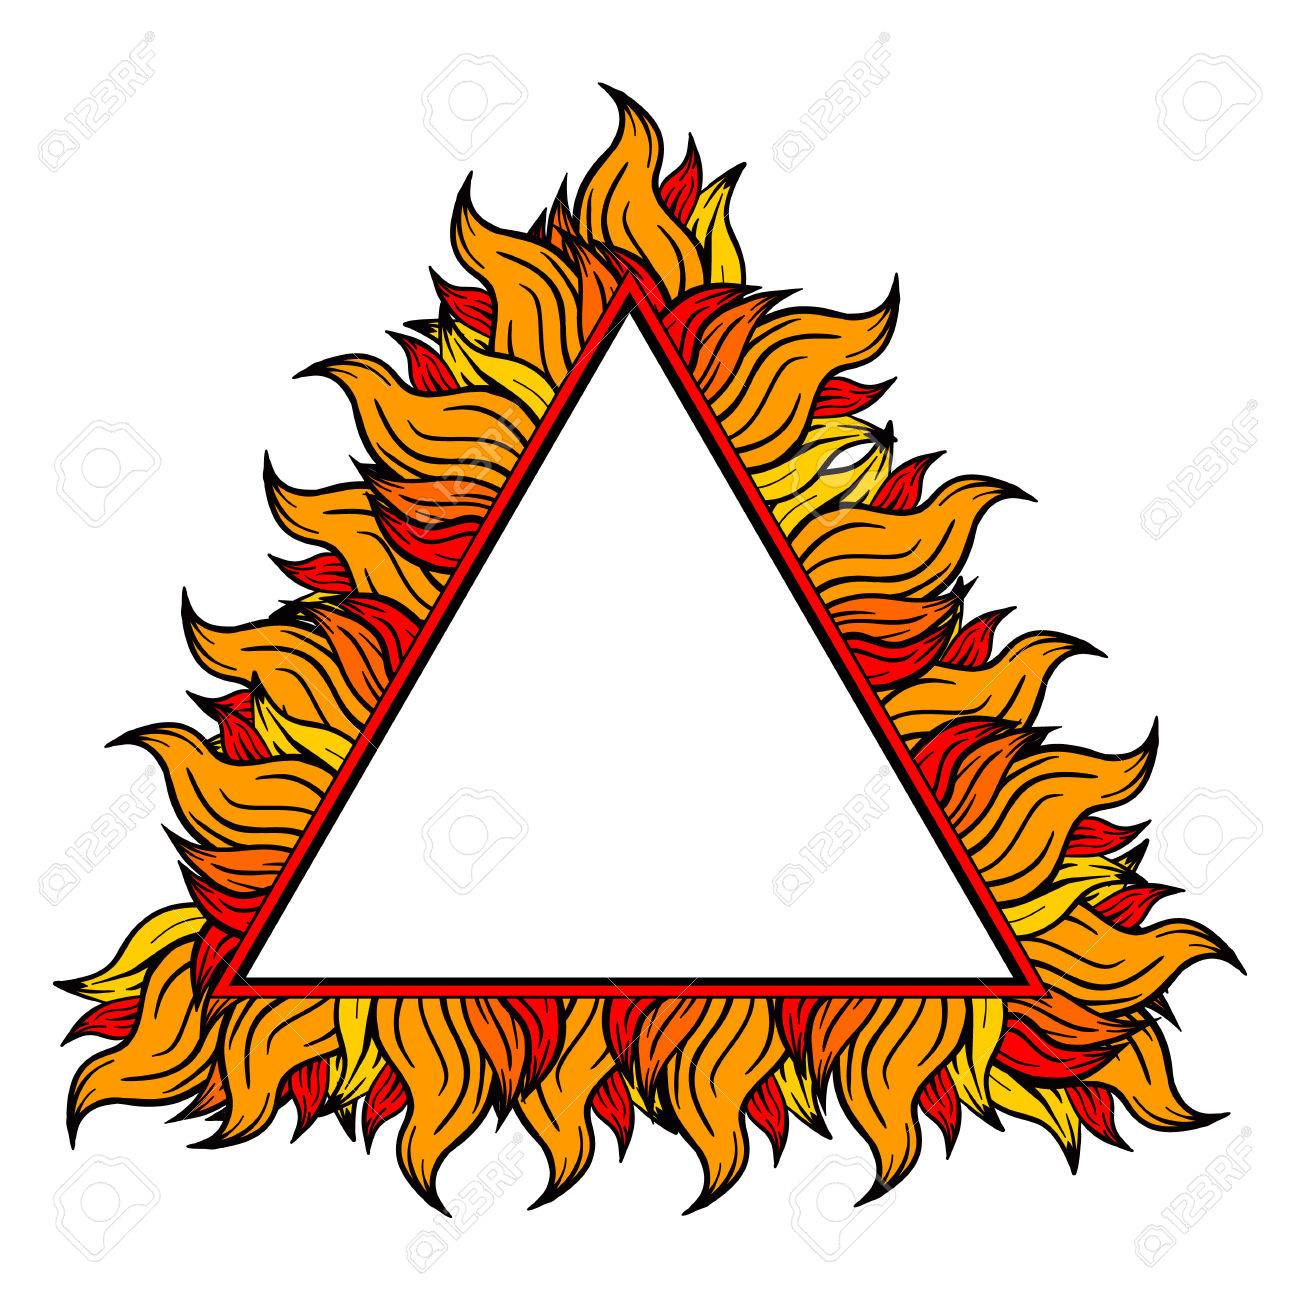 black white triangle frame with spurts of flame vector illustration rockn